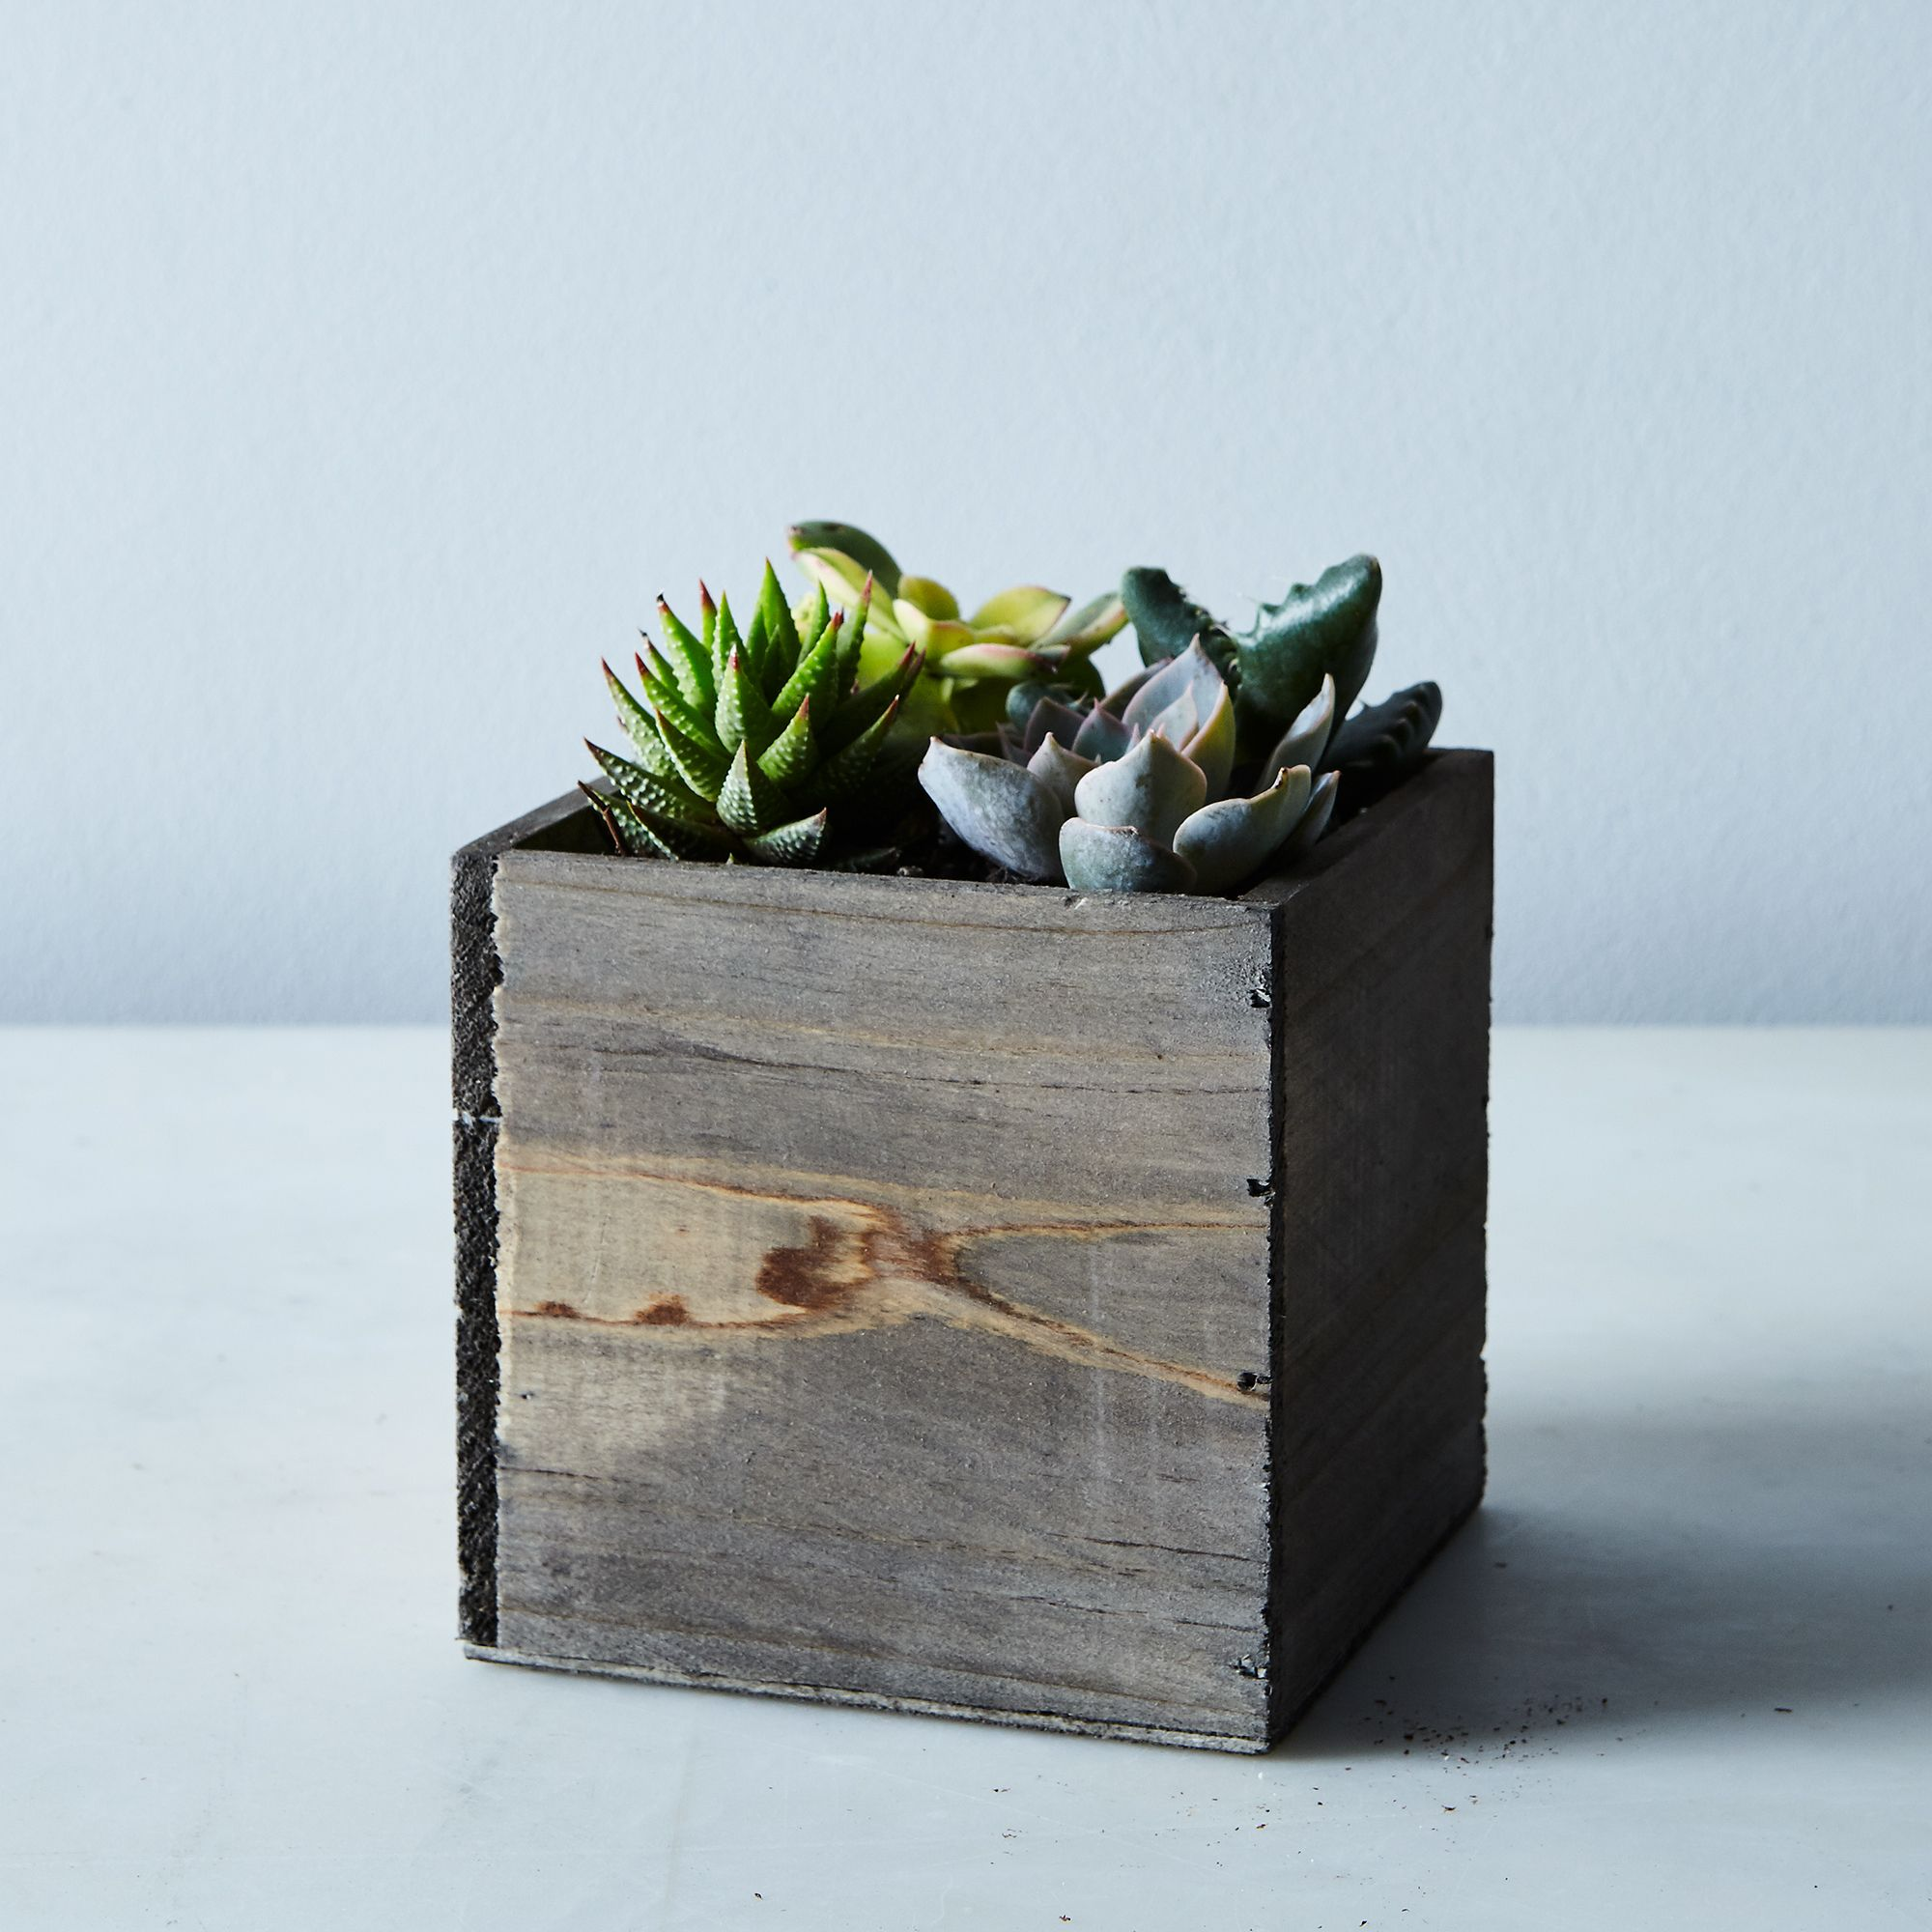 56775efd 2e71 428a 8a84 c80742bccbb0  2017 0302 shop succulents urban living wood box succulents silo rocky luten 009